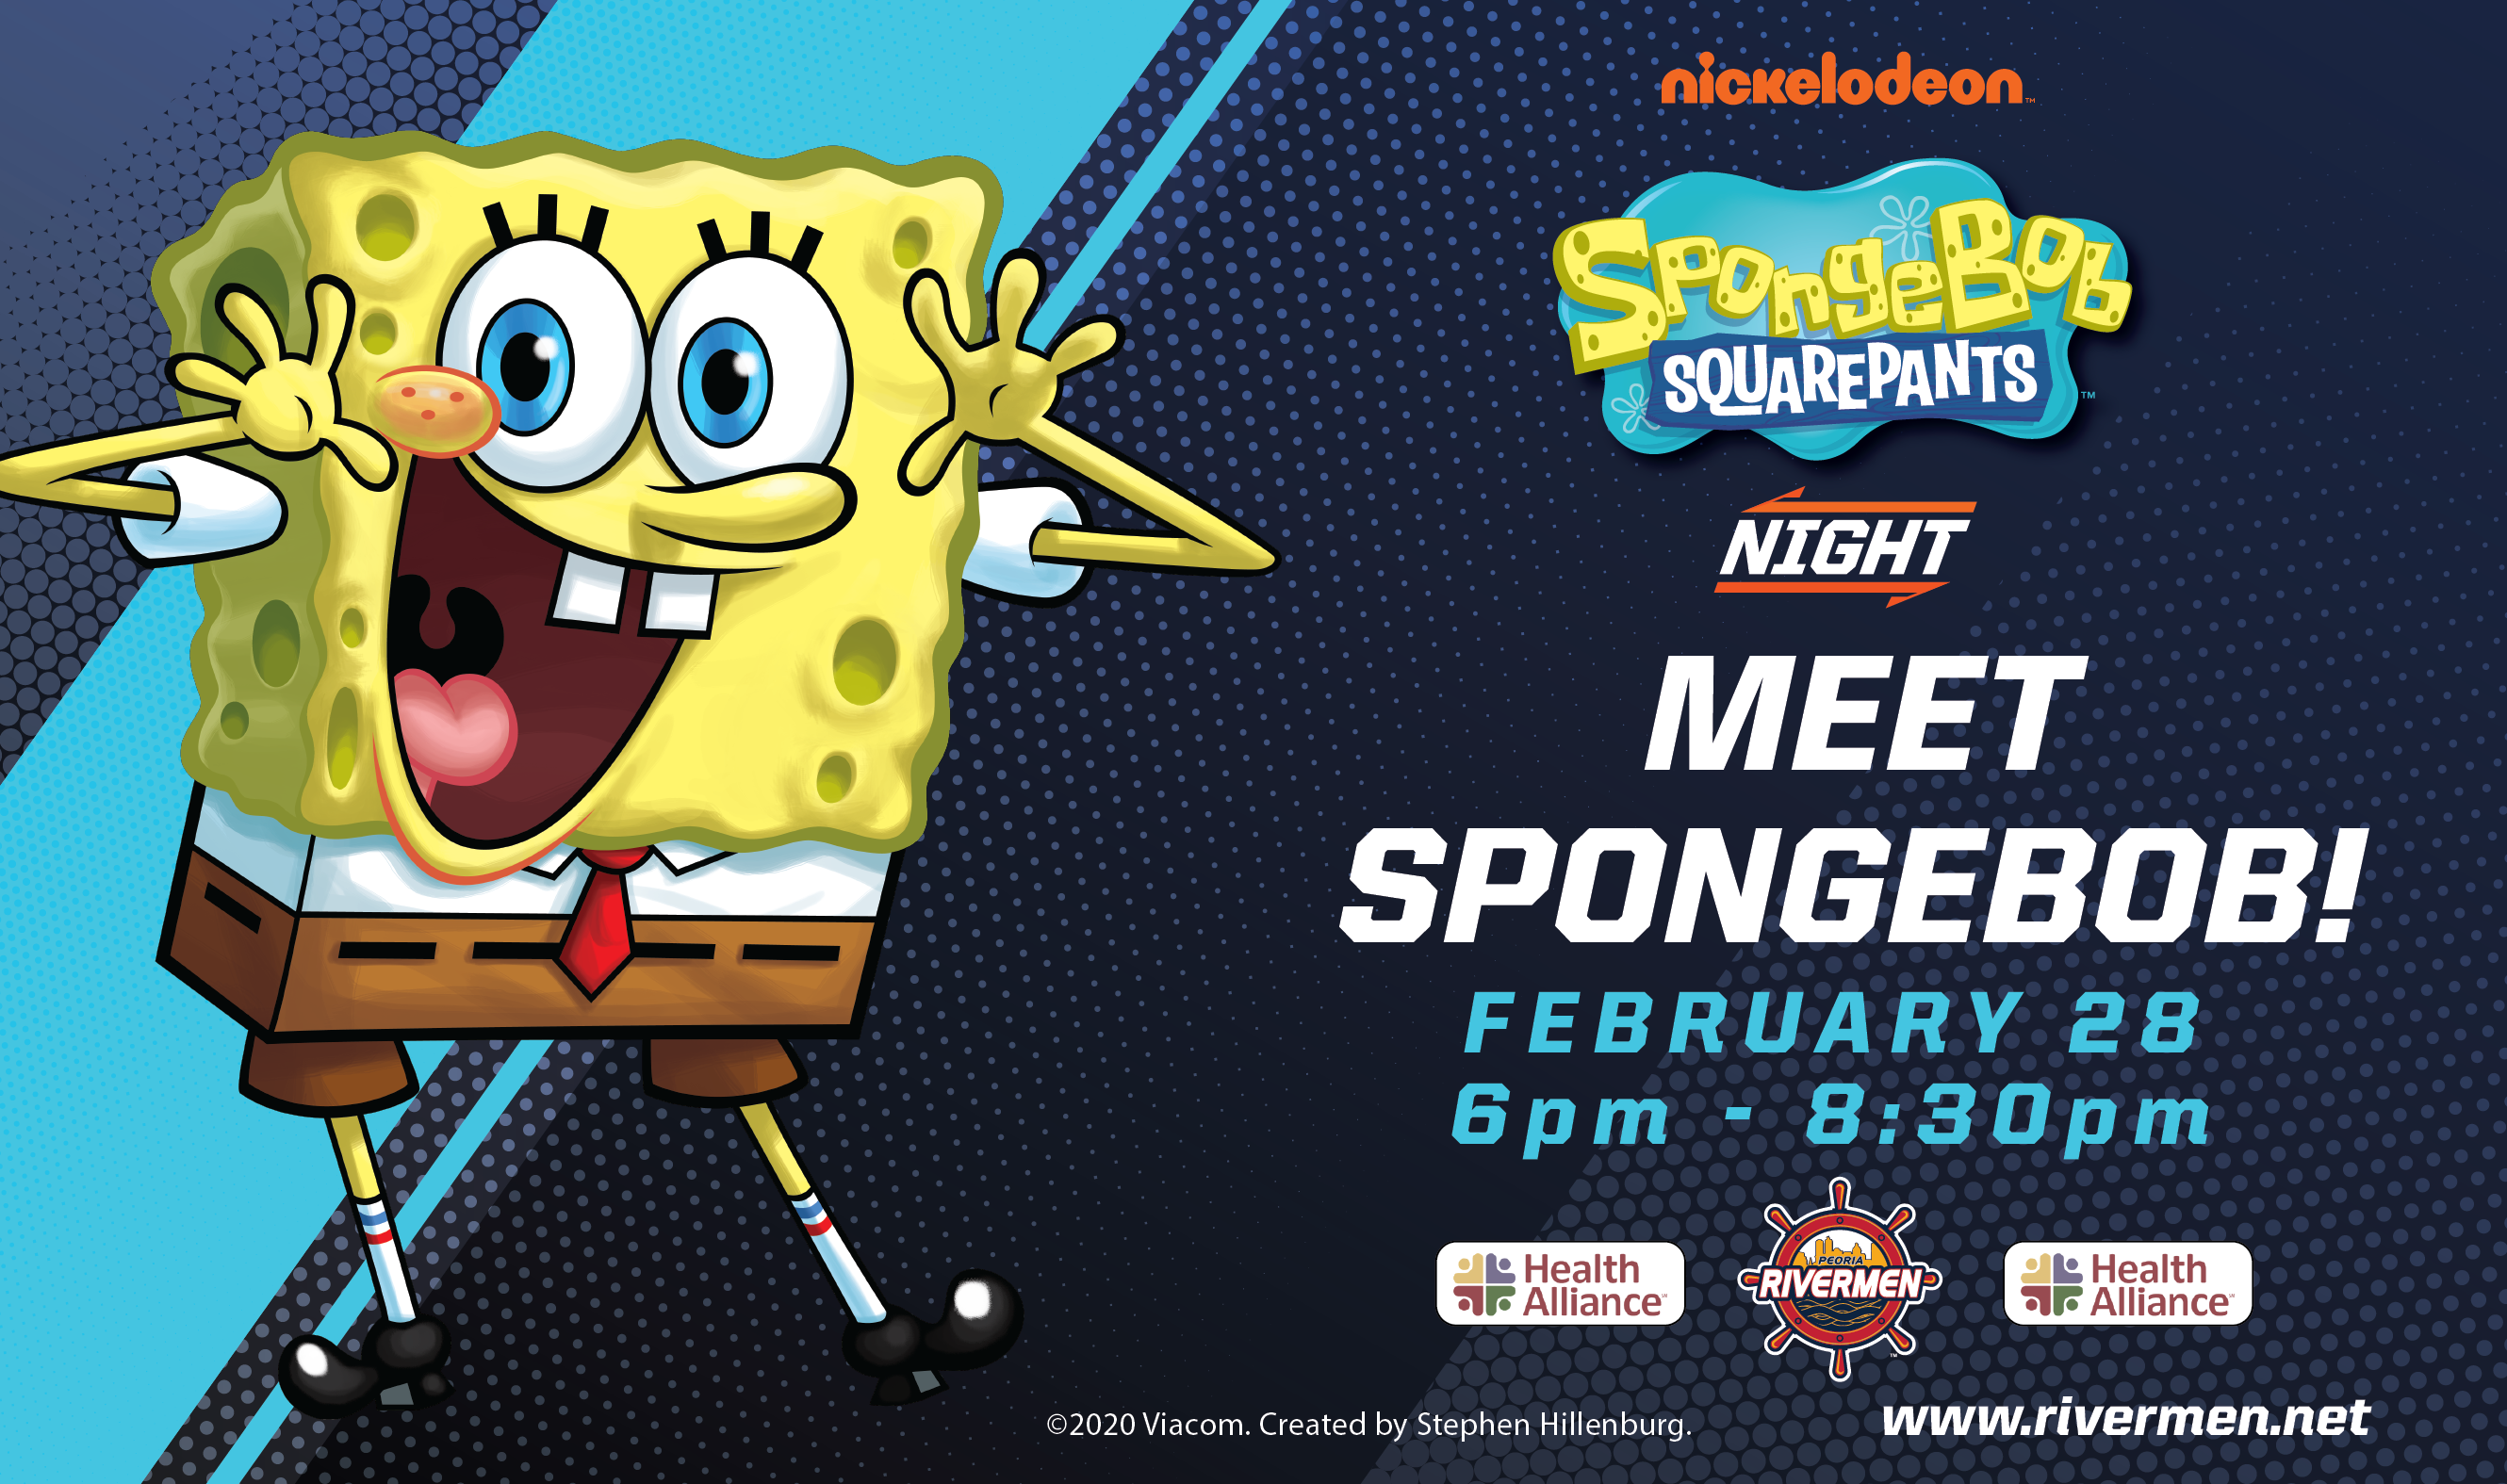 2/28 Nickelodeon Night Package: (2) Select Lower bowl Tickets (2) Hot Dogs (2) Soft Drinks (2) stocking caps (COPY)